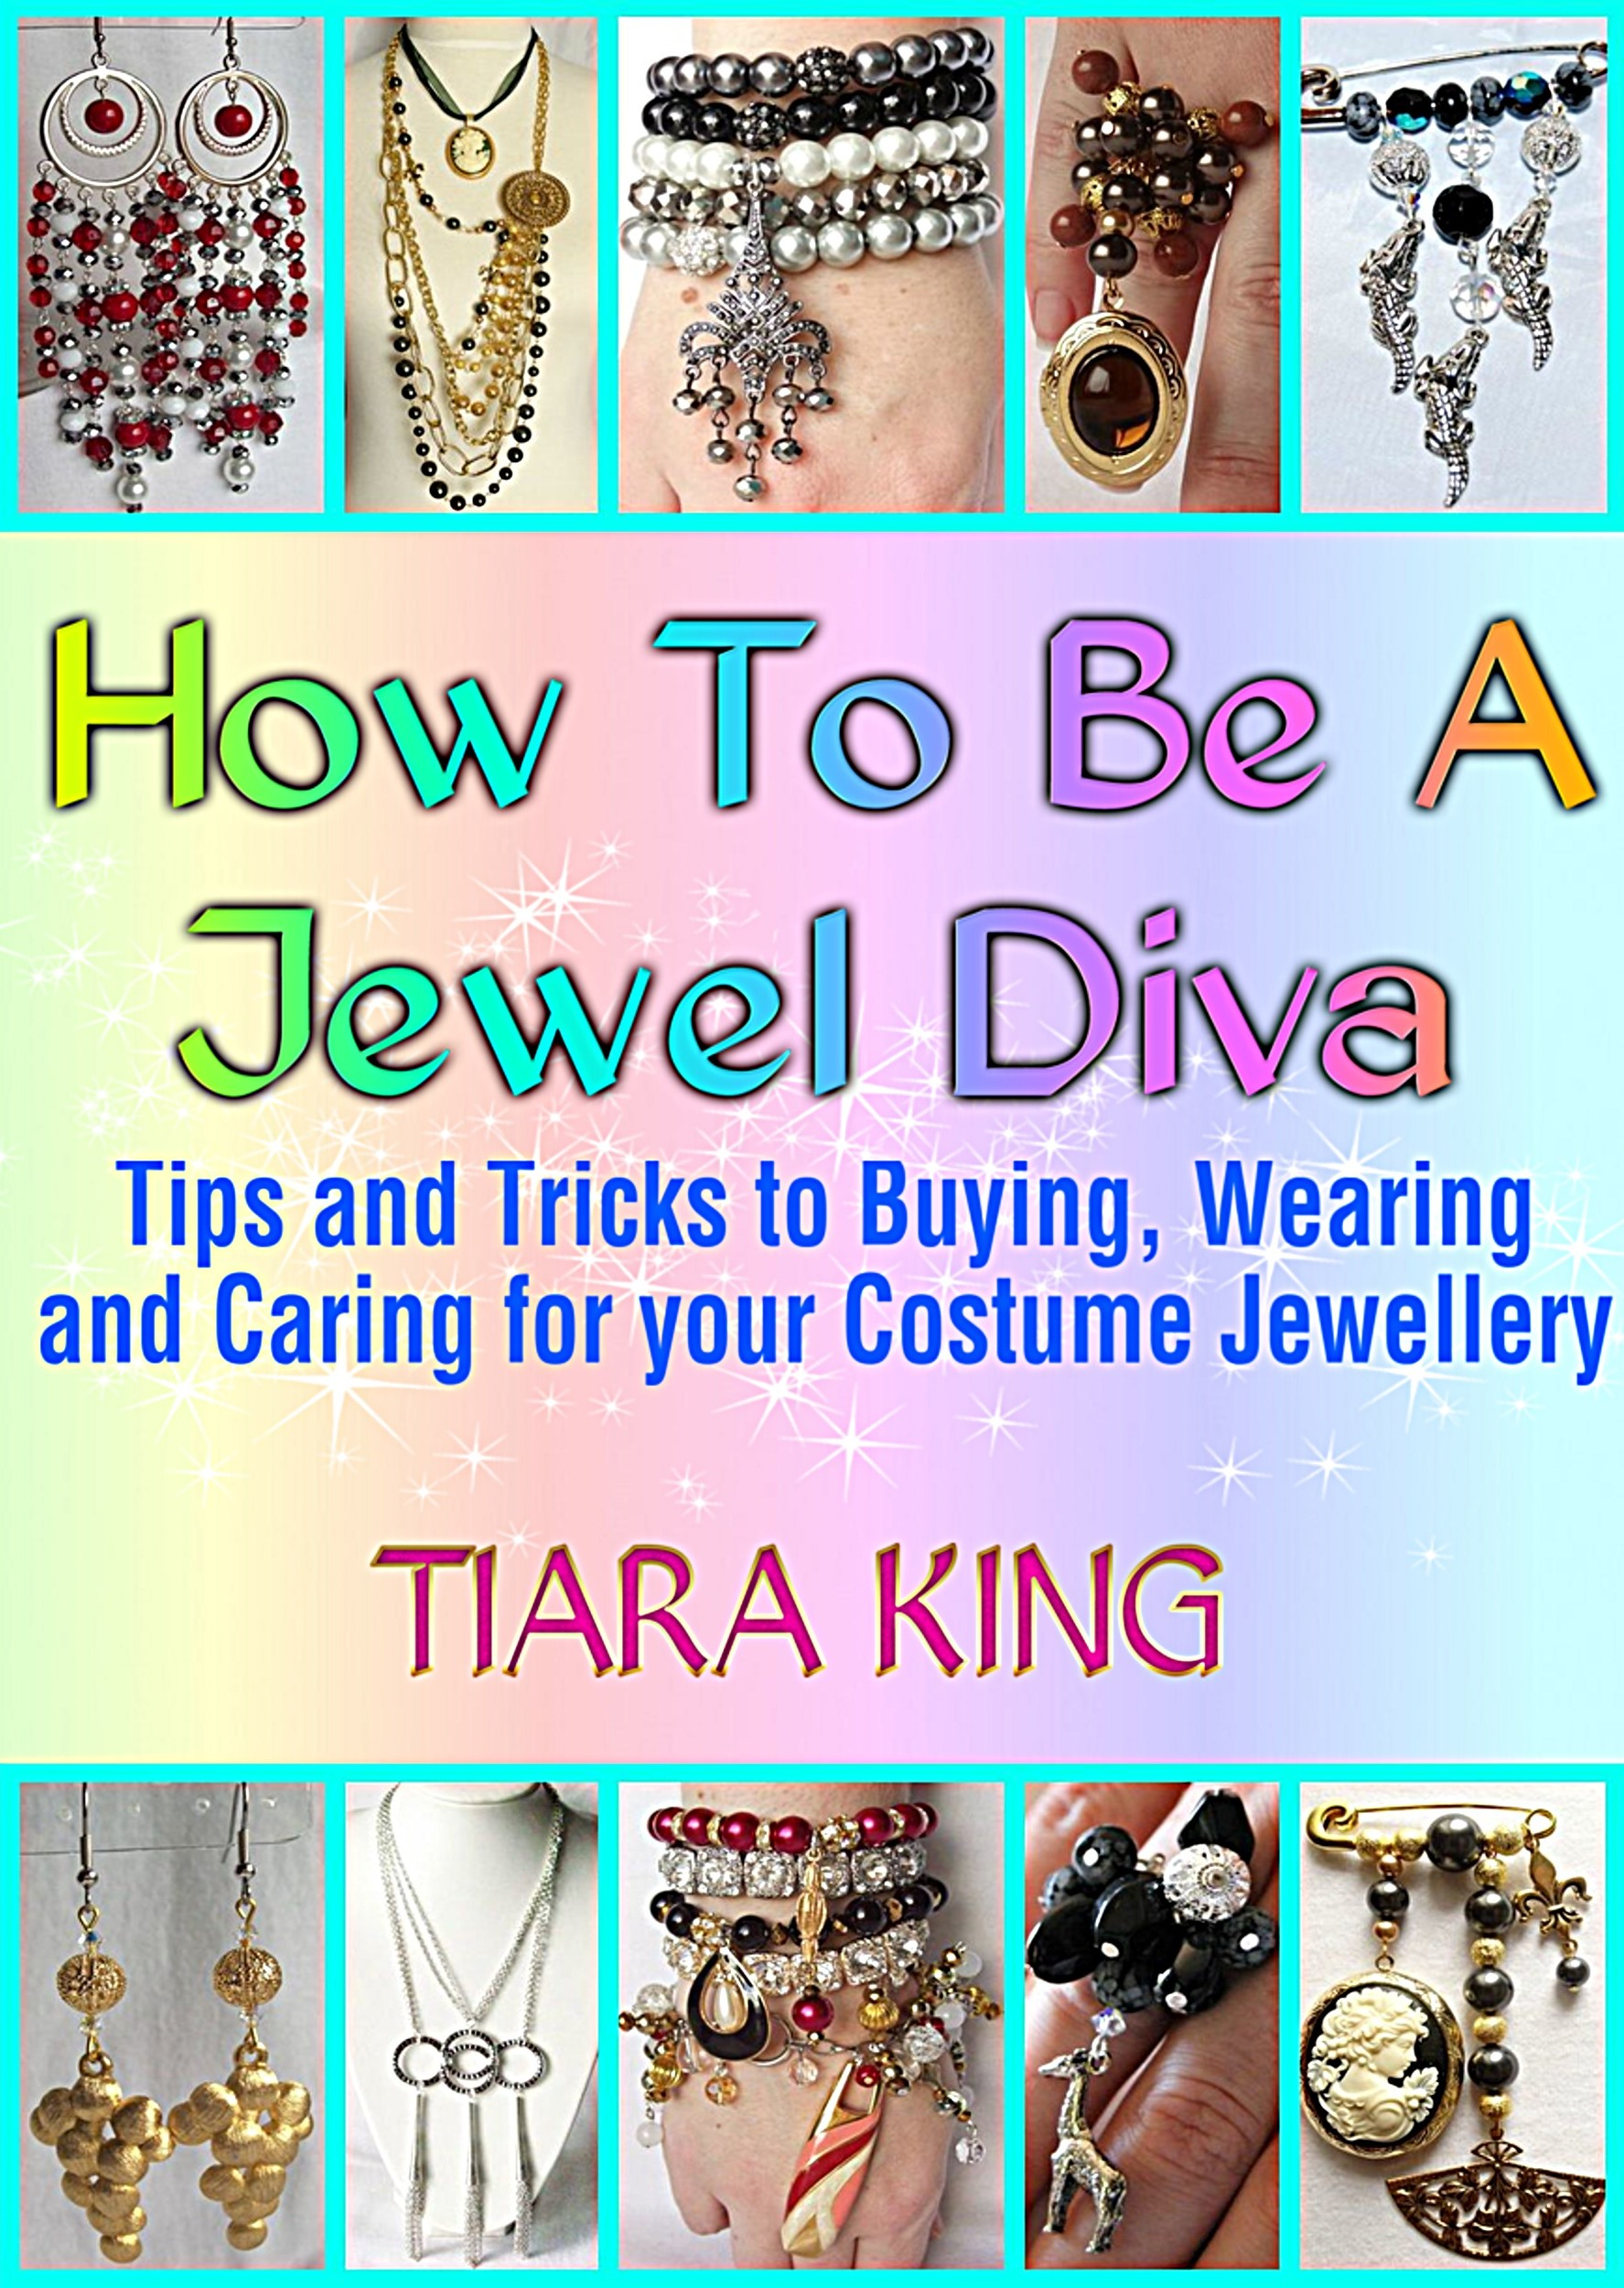 Tiara King's How To Be A Jewel Diva